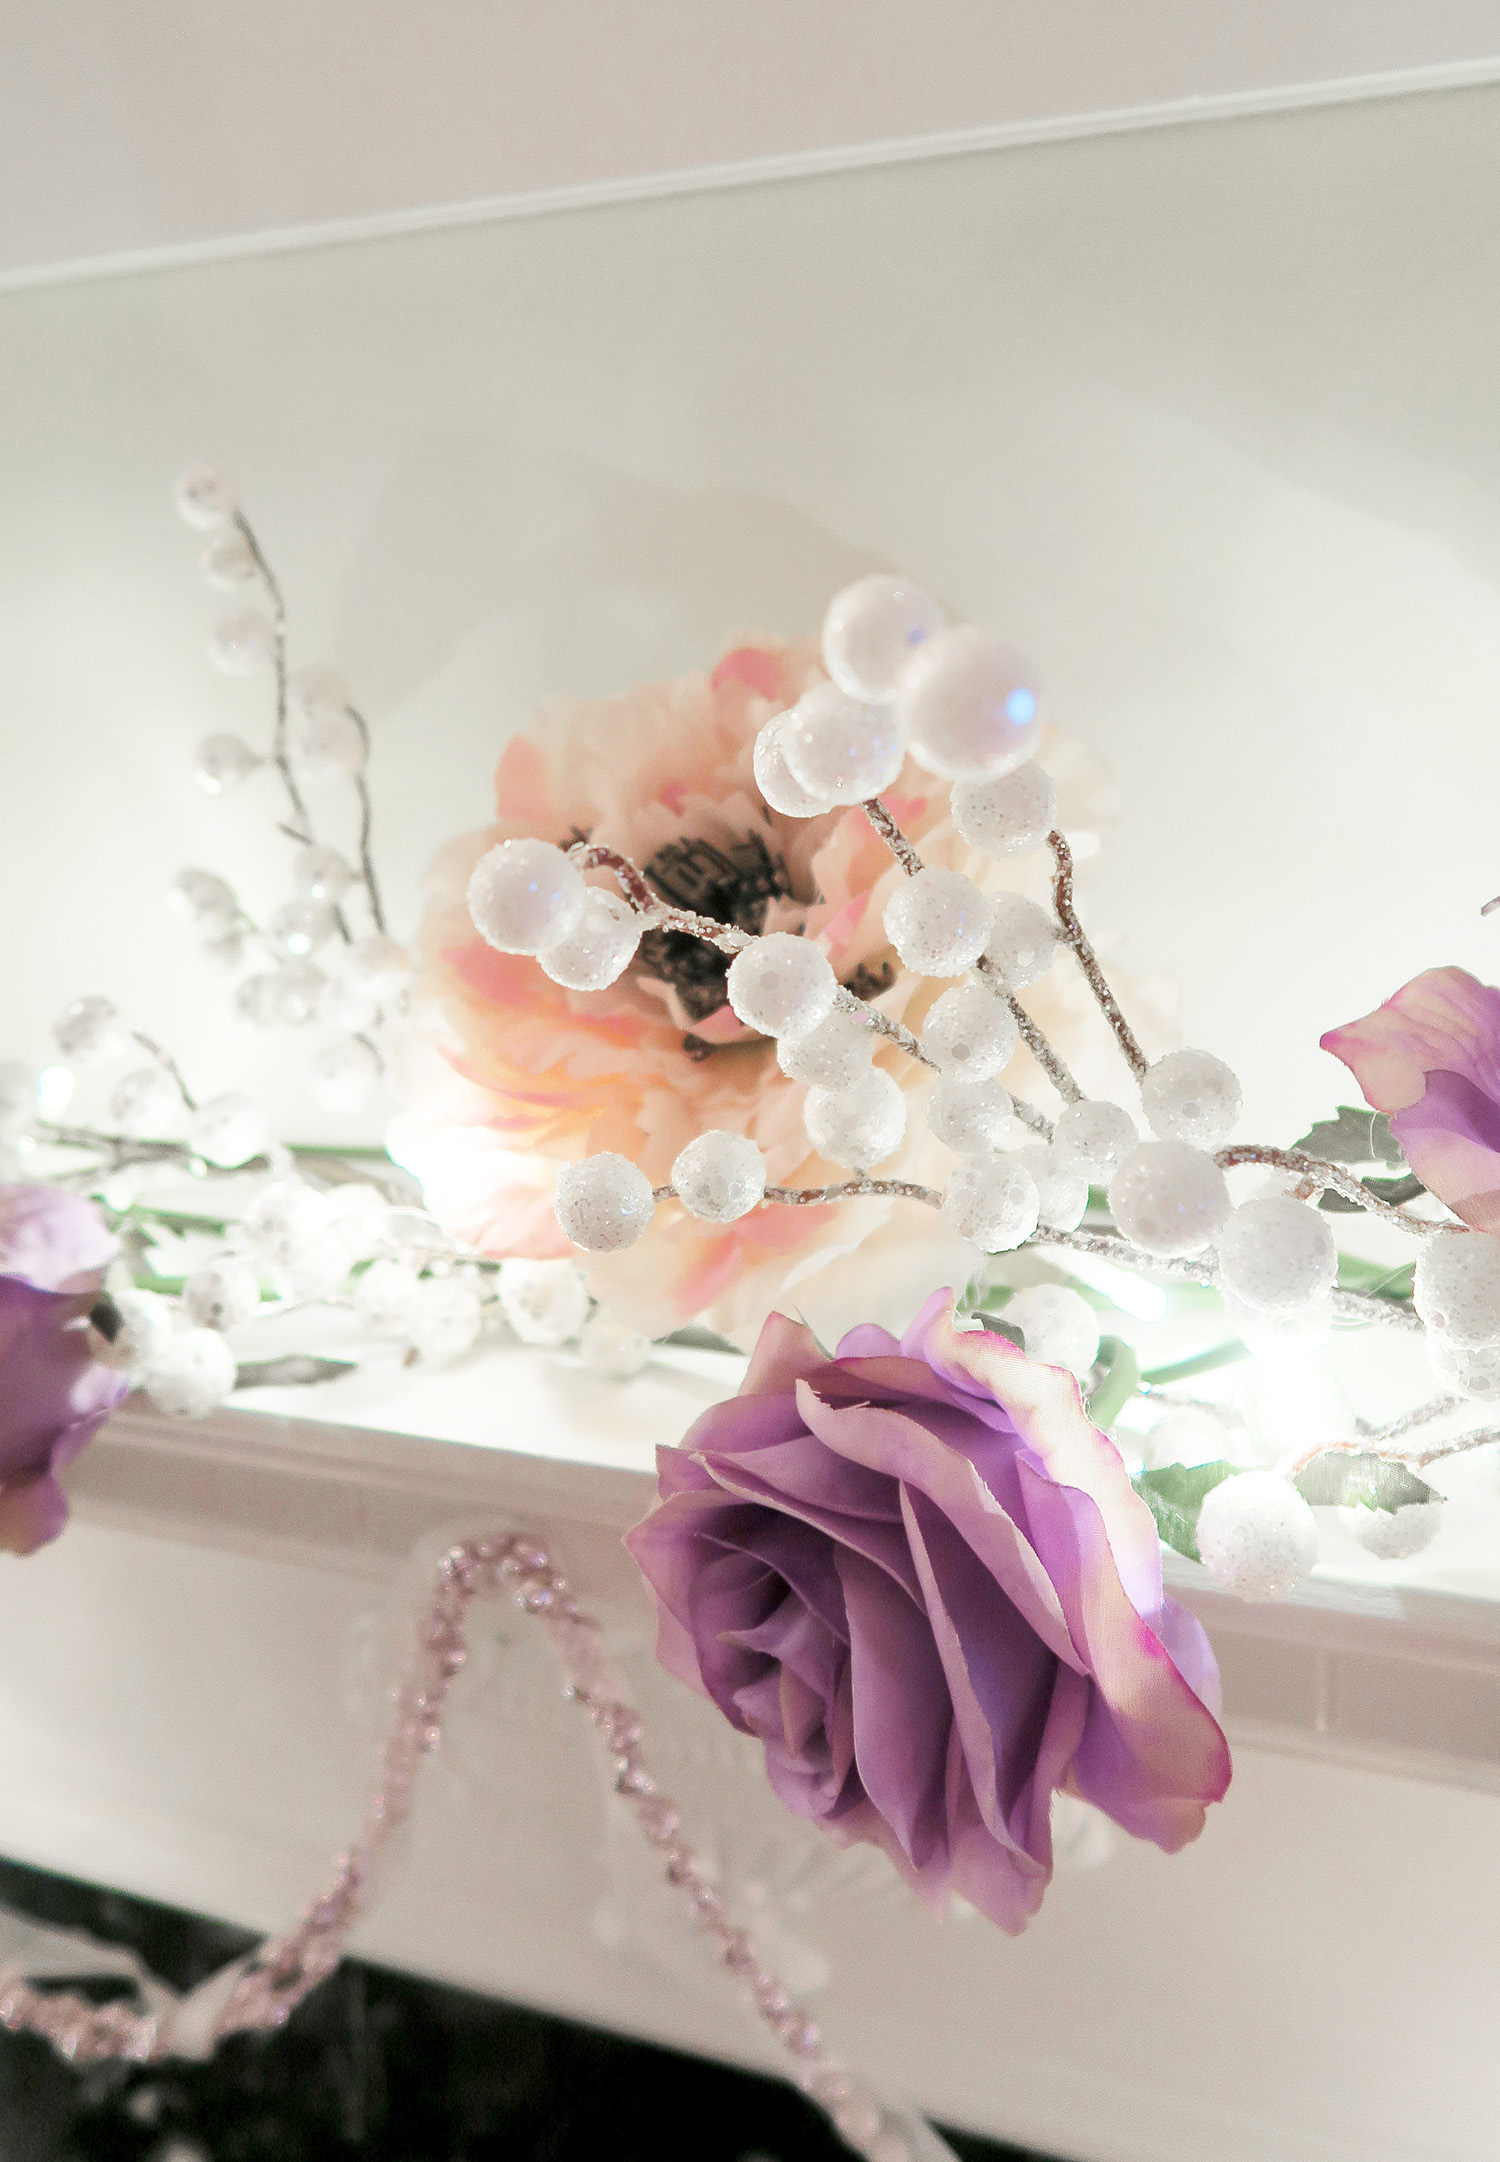 Pink Christmas, Christmas lights, Christmas Flowers, Decorations, Rose, Blush, Nude, Chandelier